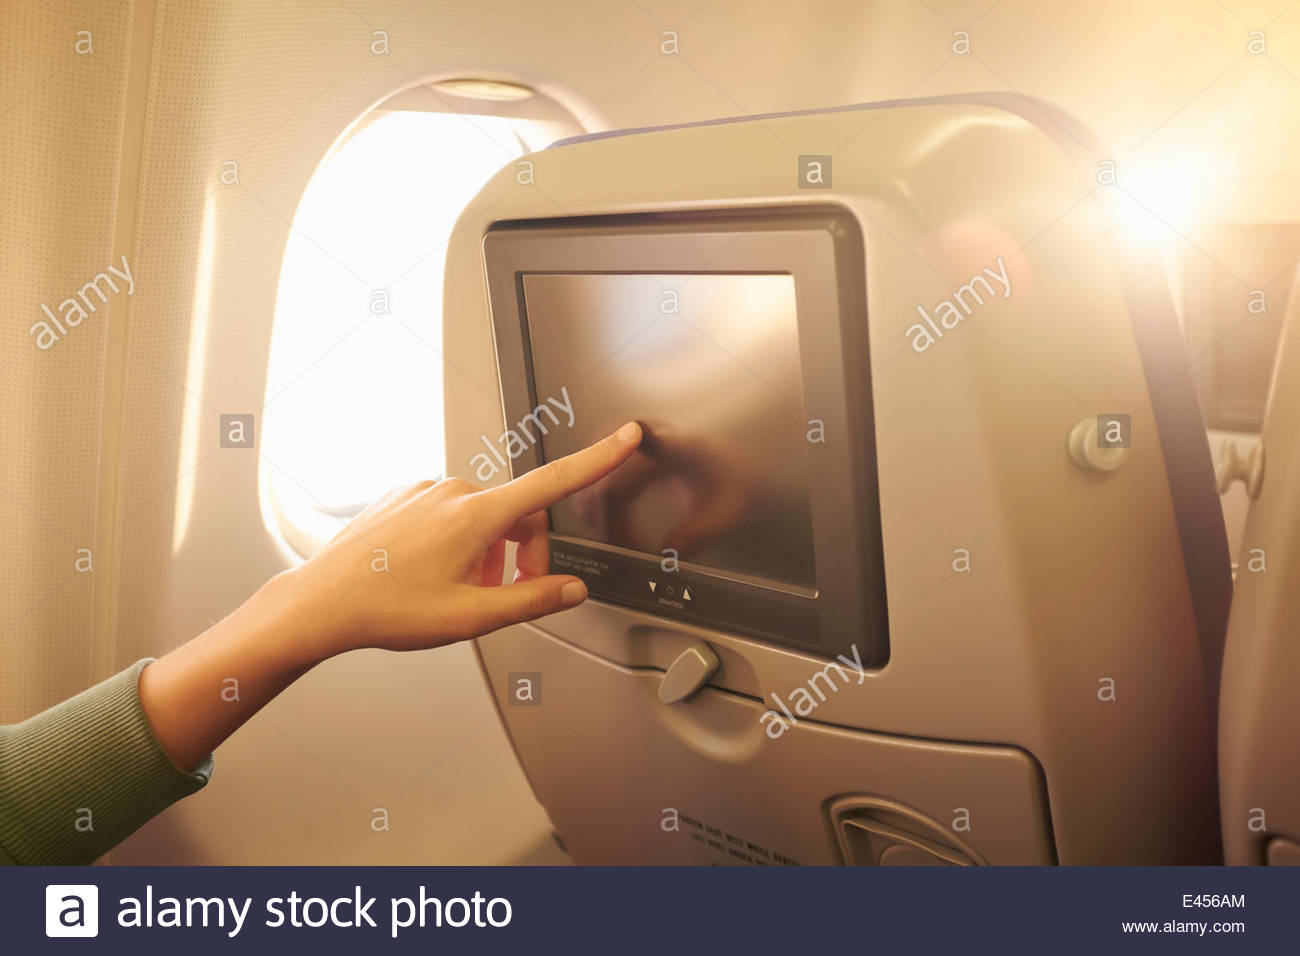 Close up of female hand using touchscreen in airplane headrest - Stock Image